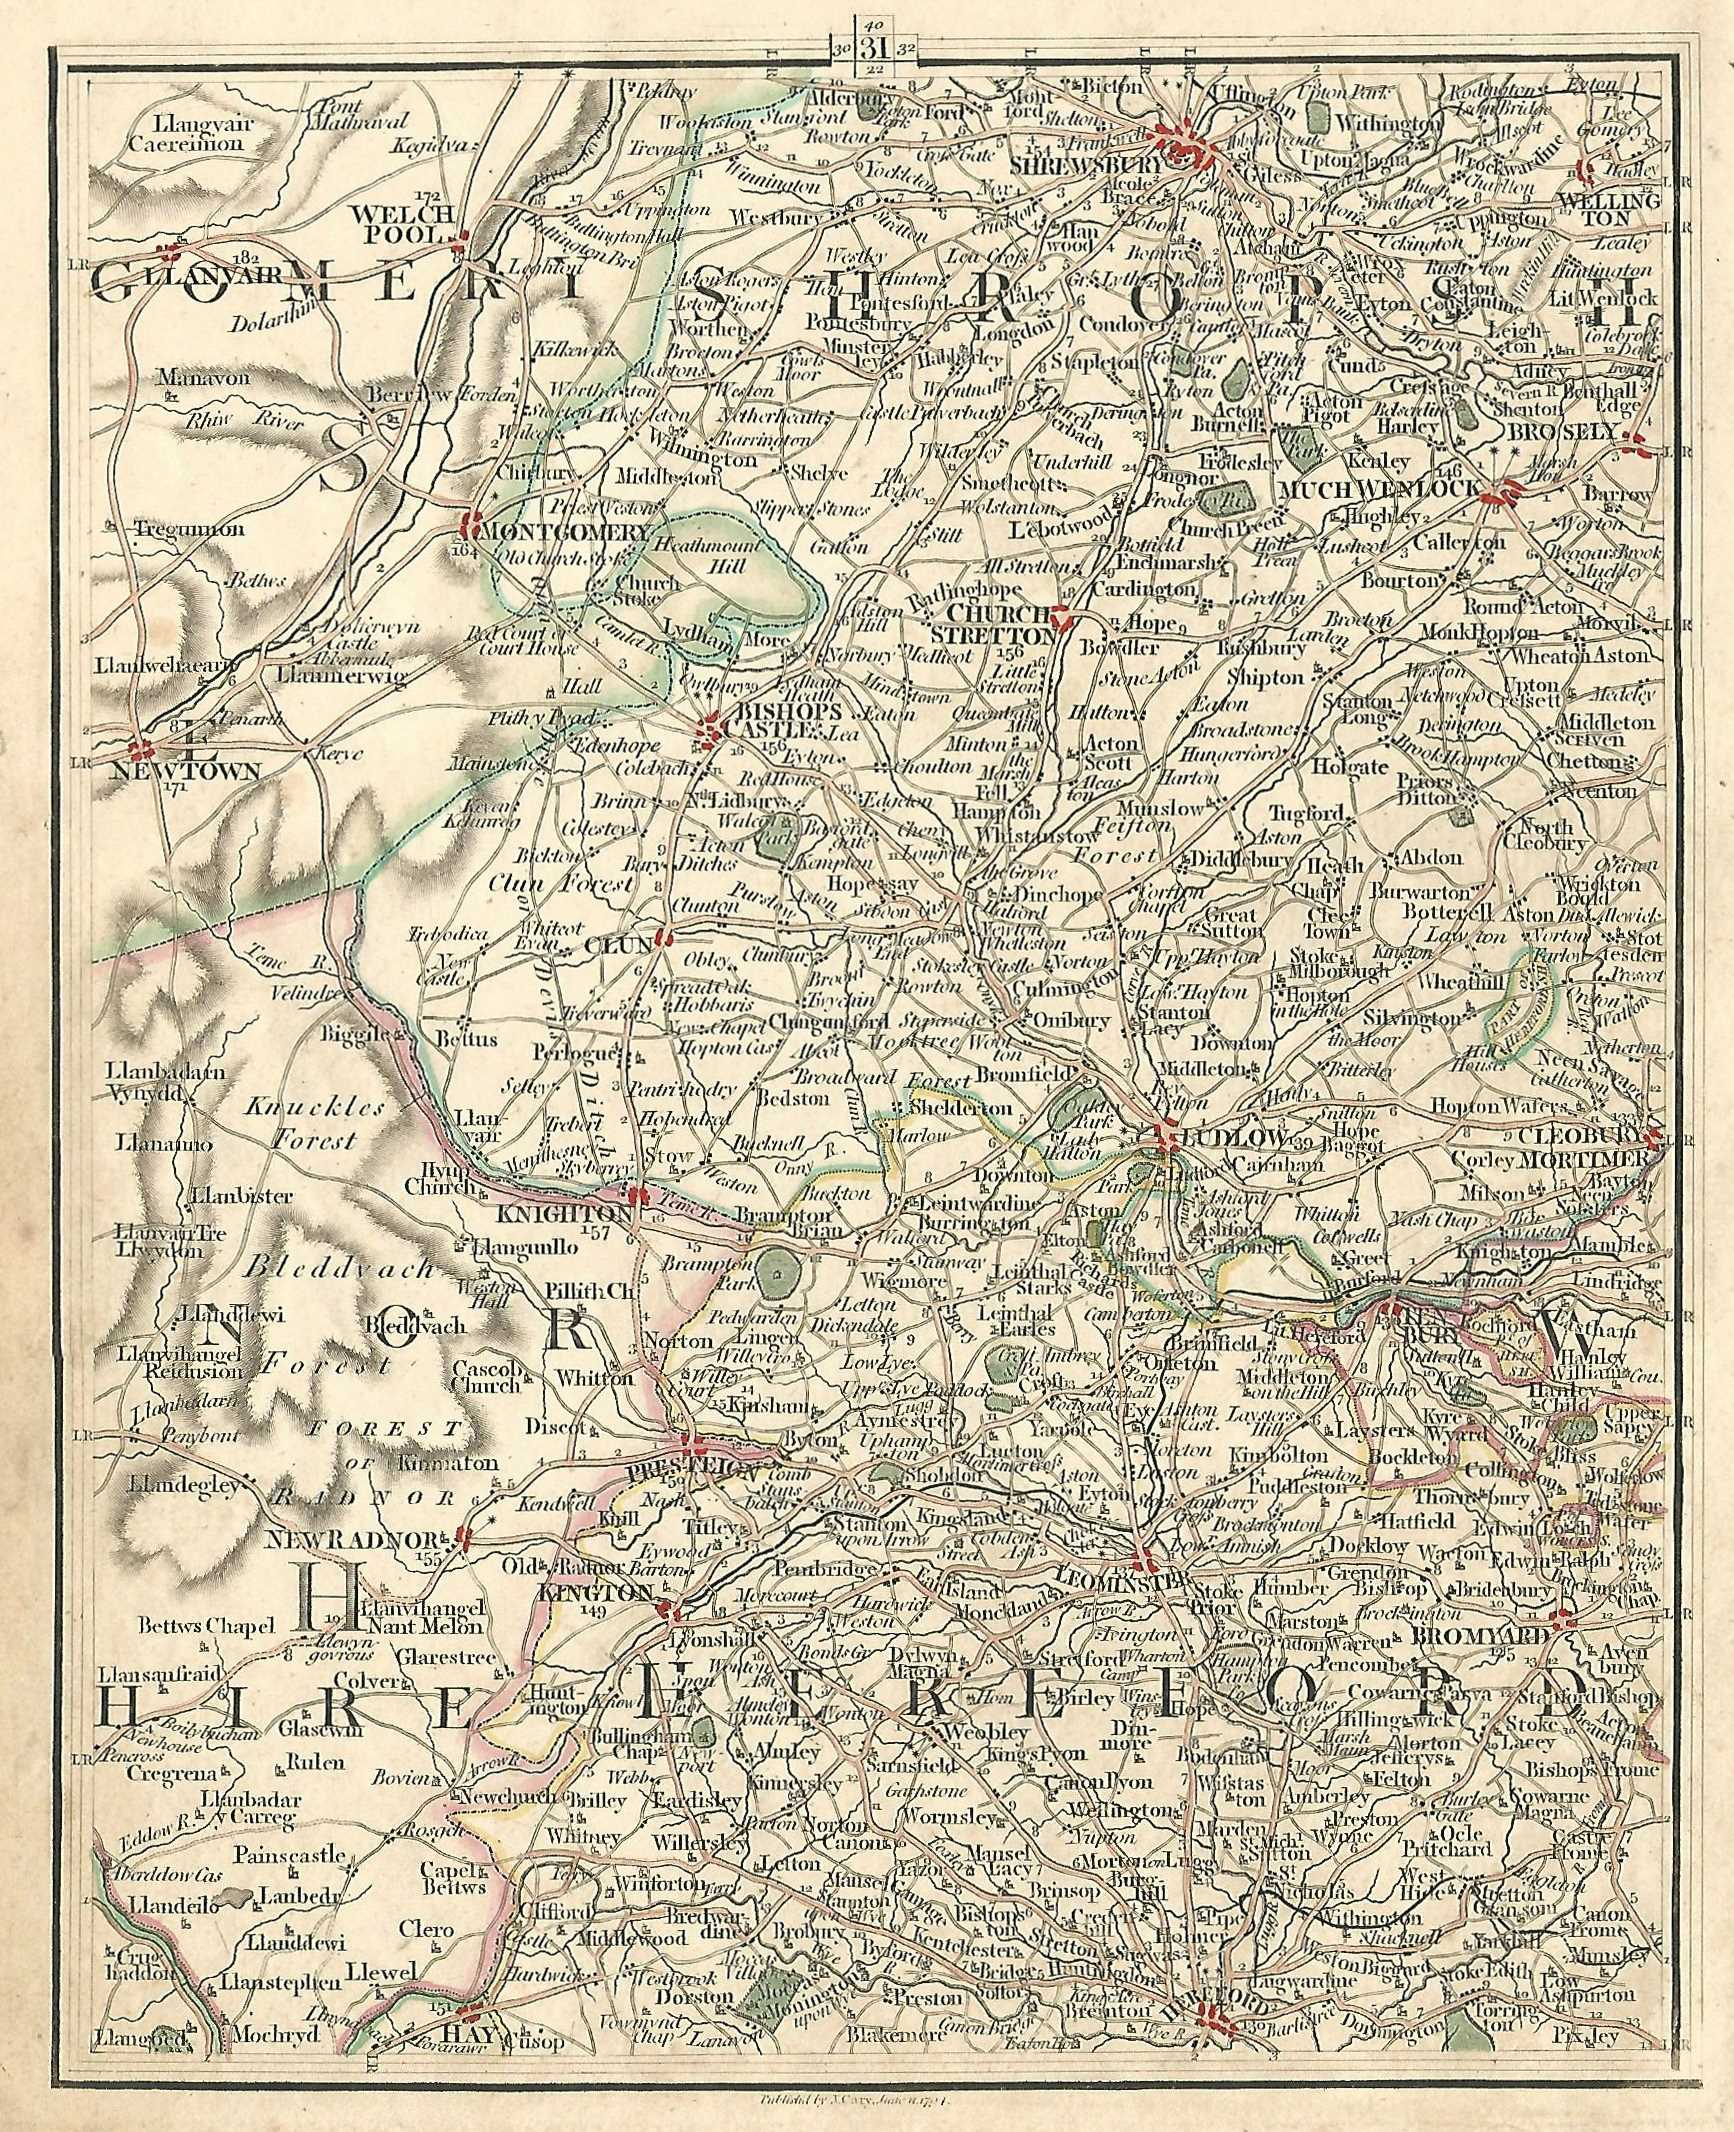 Shropshire Shrewsbury Ludlow Herefordshire Hereford antique map